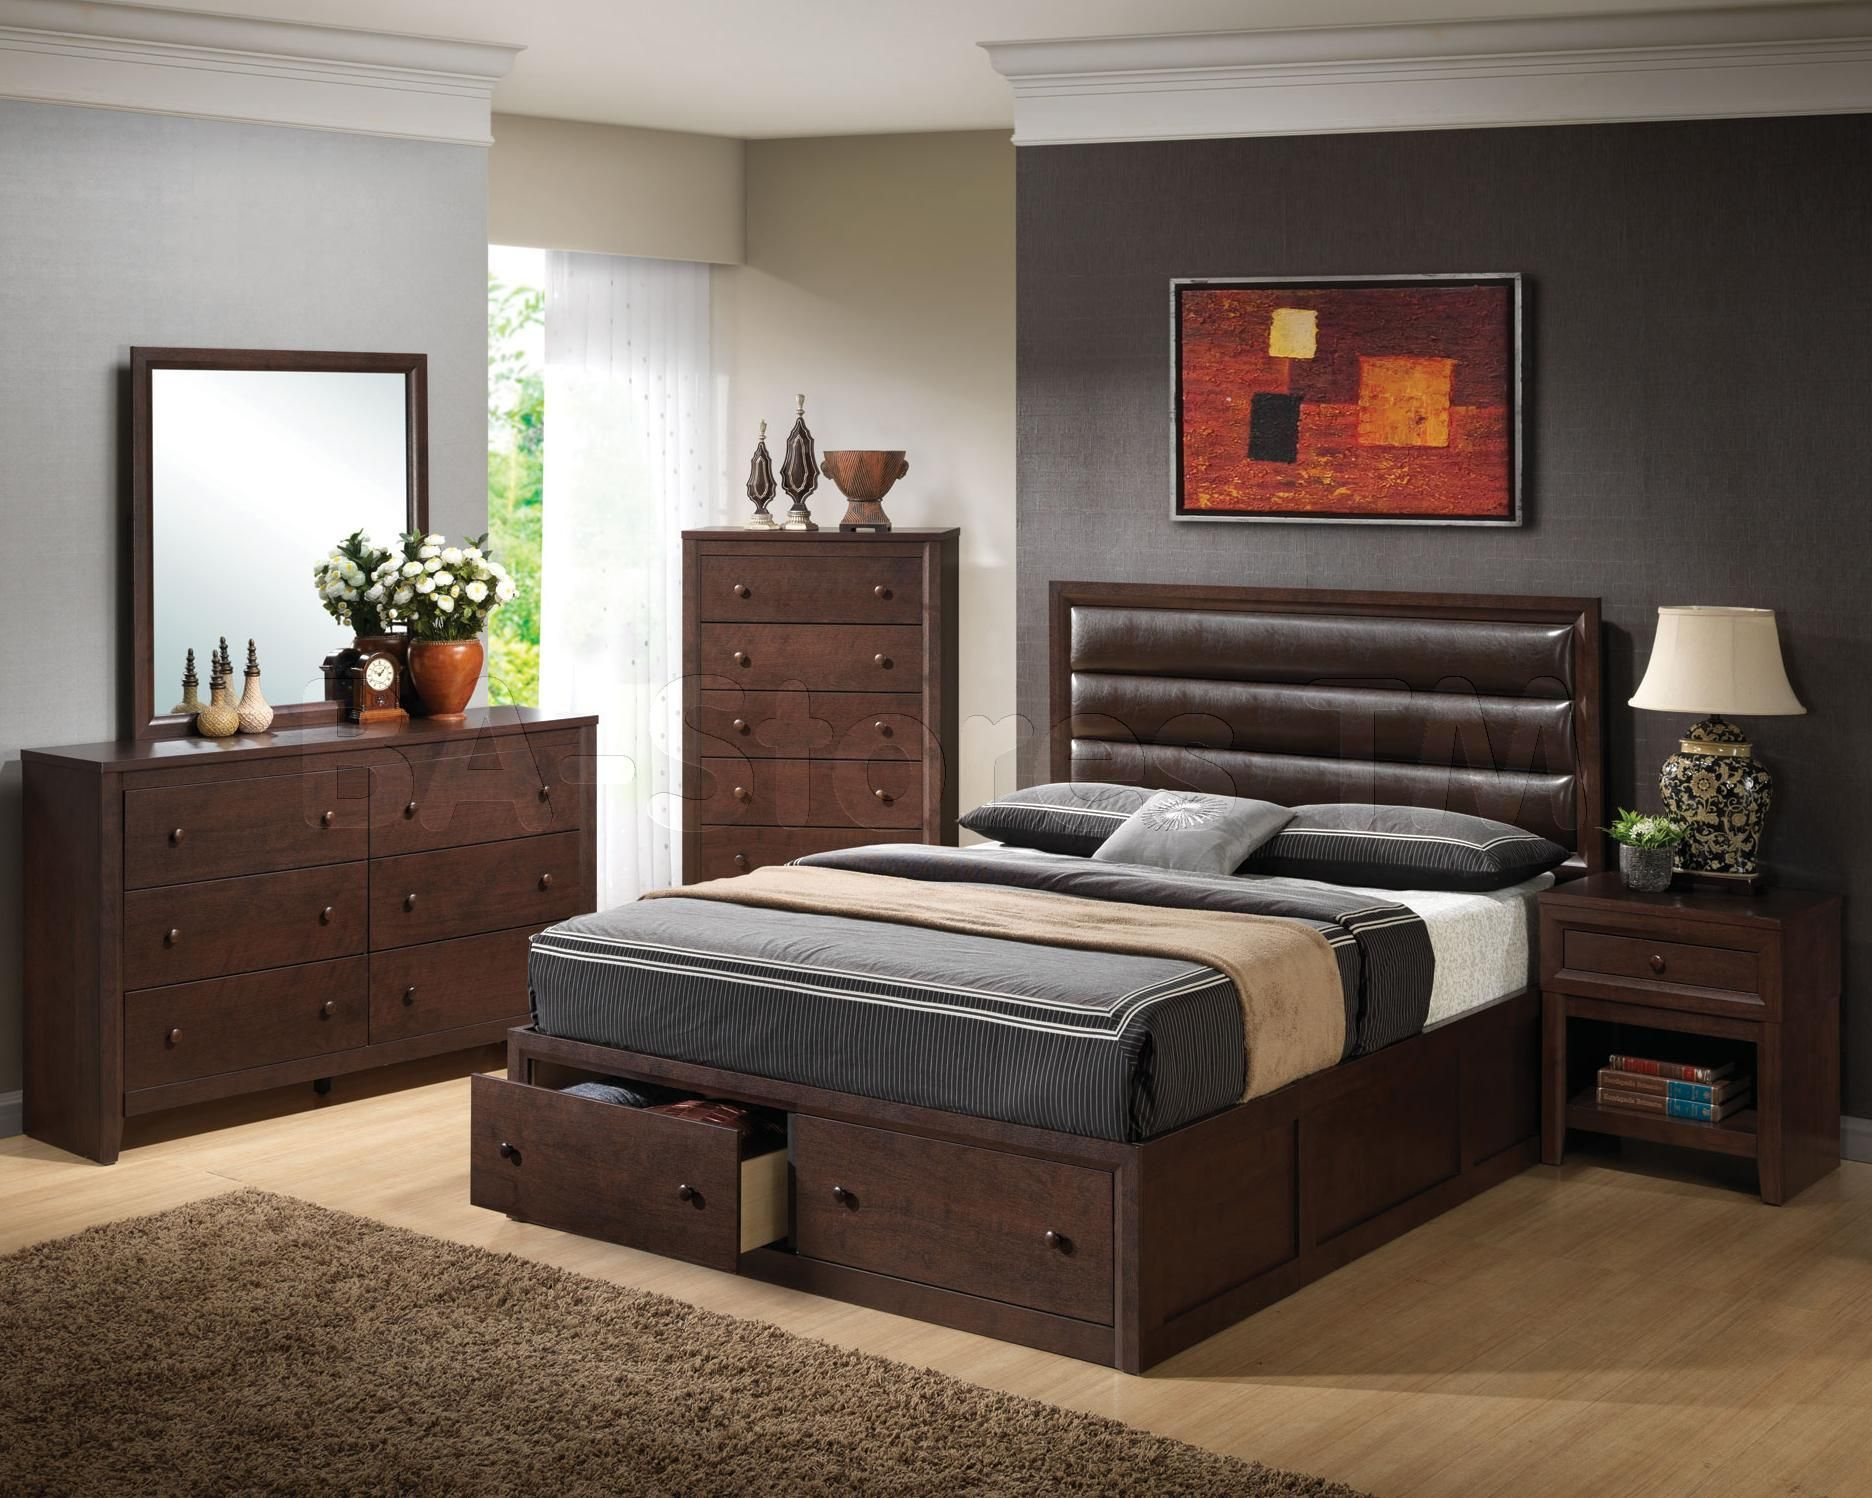 Terrific Bedroom Paint Ideas With Cherry Furniture Country Bedroom Interior Design Ideas Ghosoteloinfo